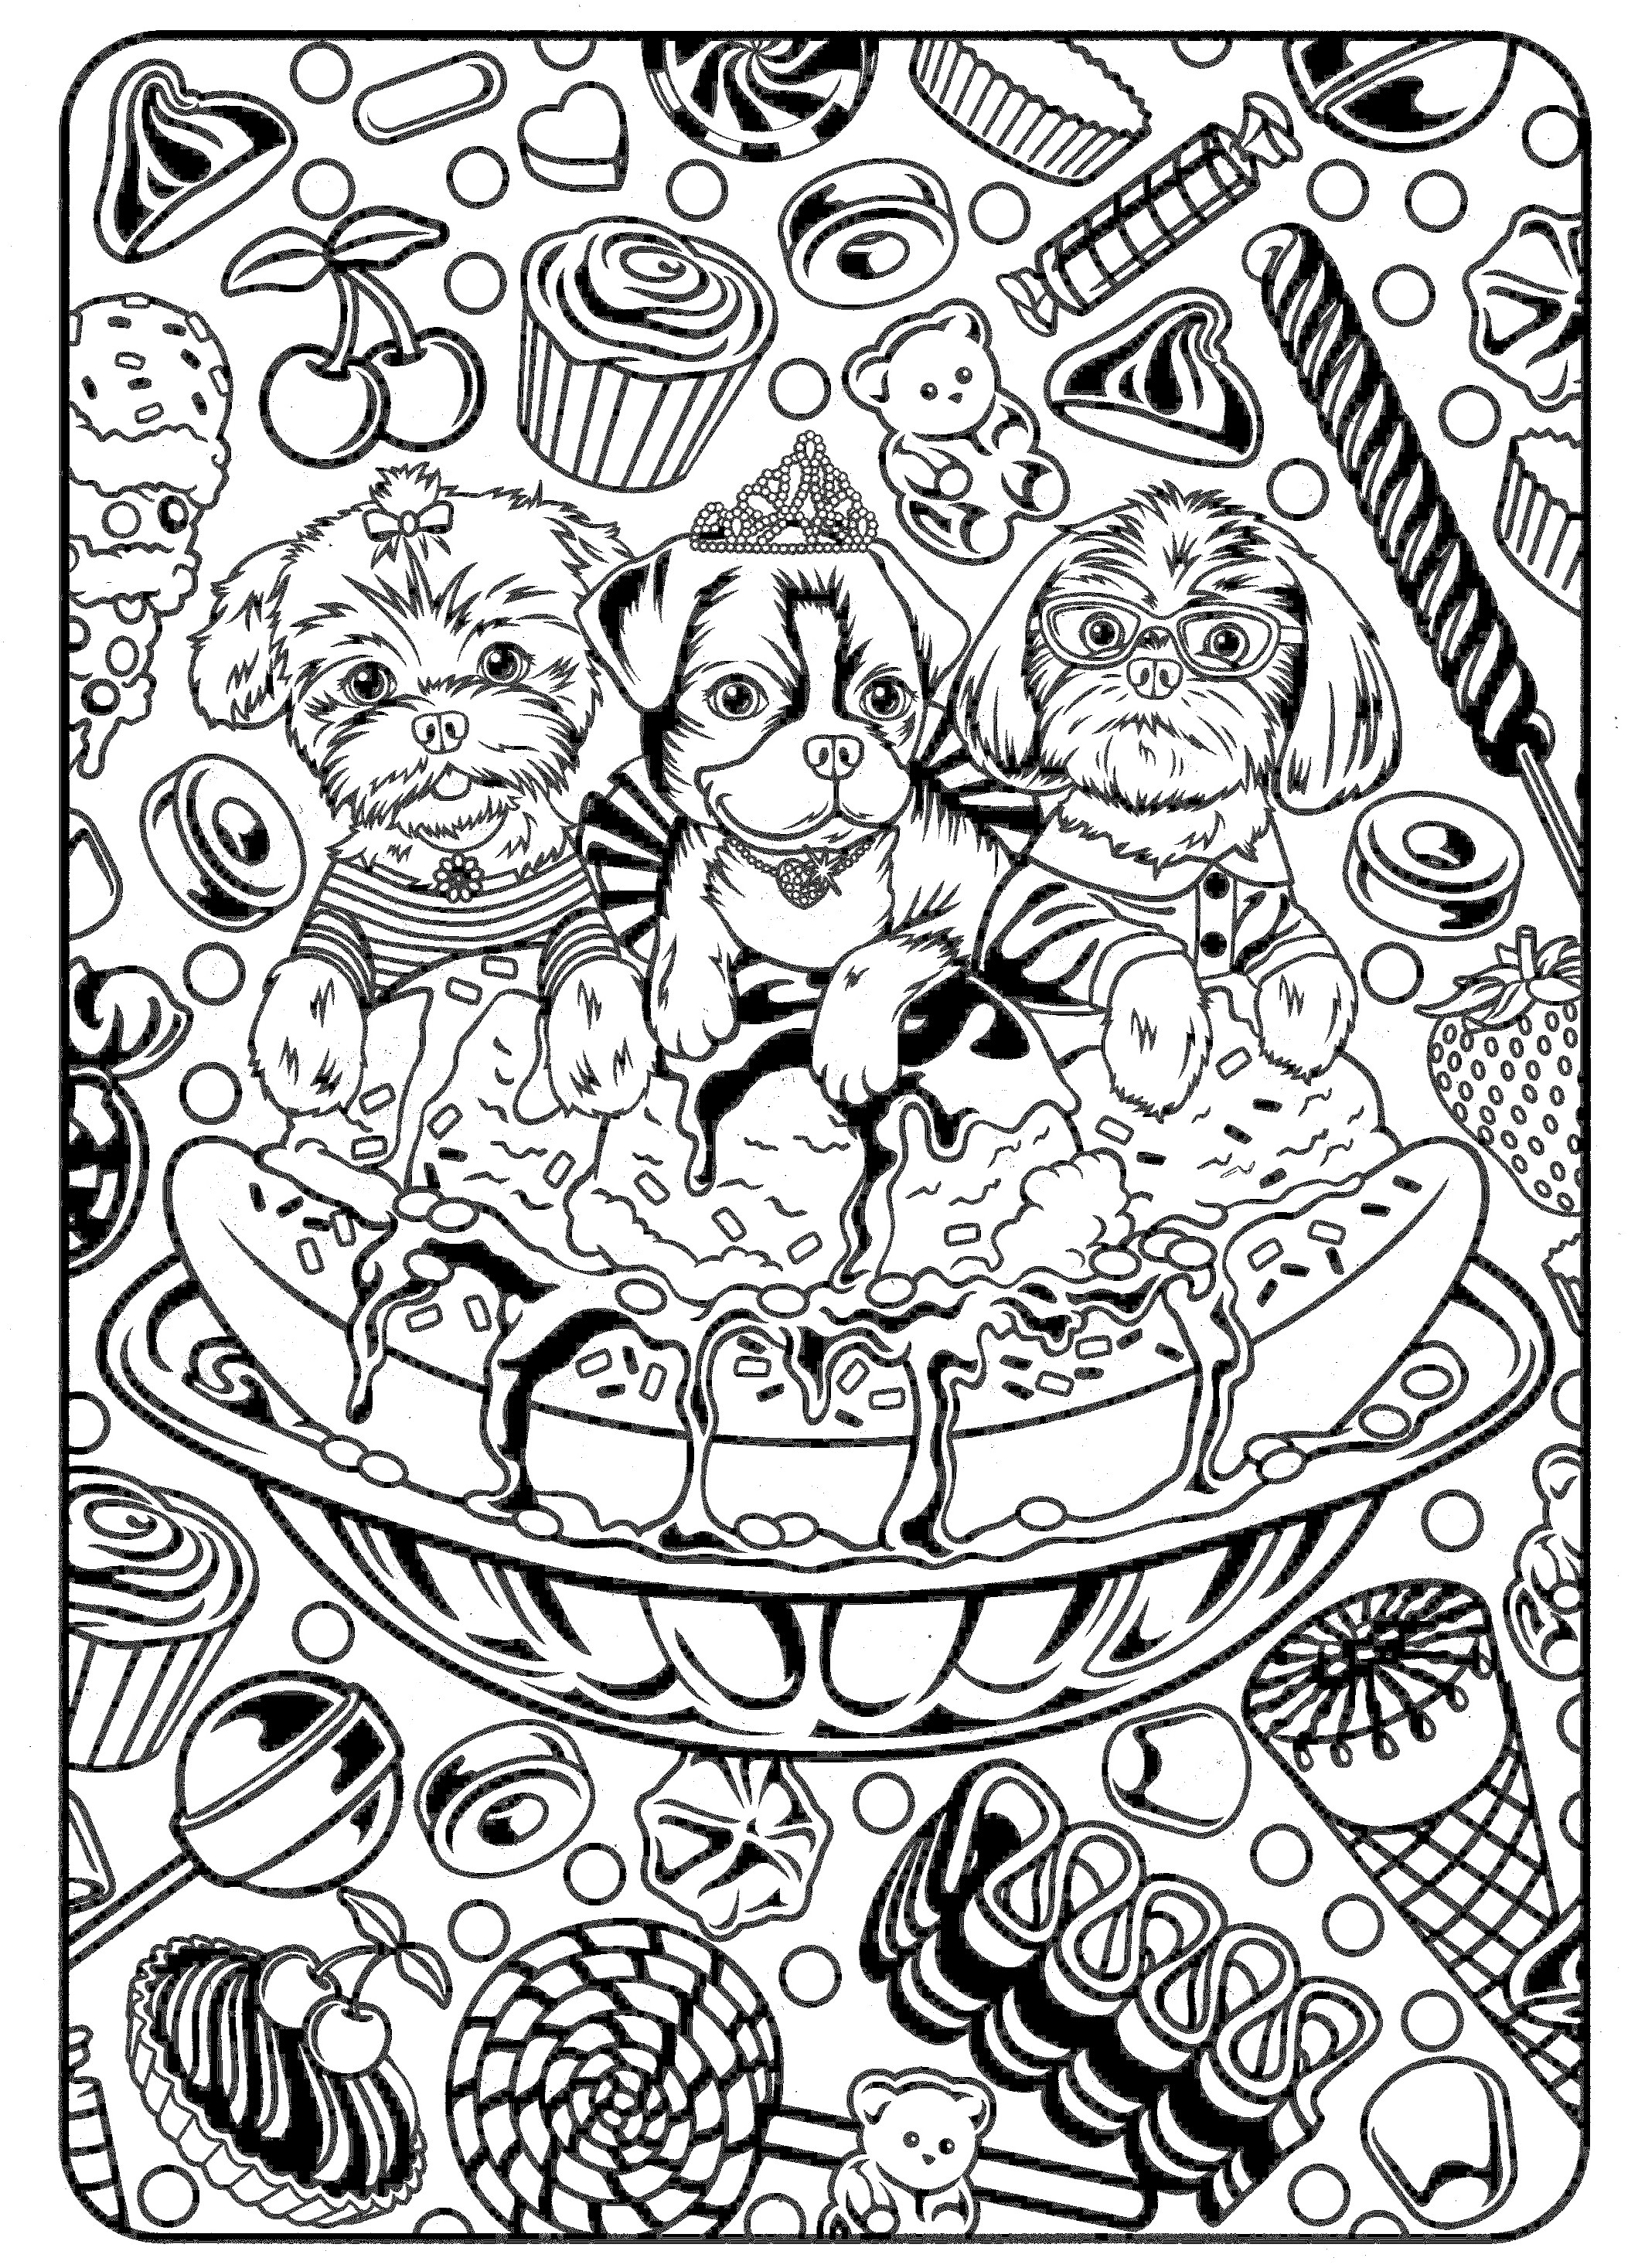 coloring cute pictures cute coloring pages best coloring pages for kids pictures coloring cute 1 1